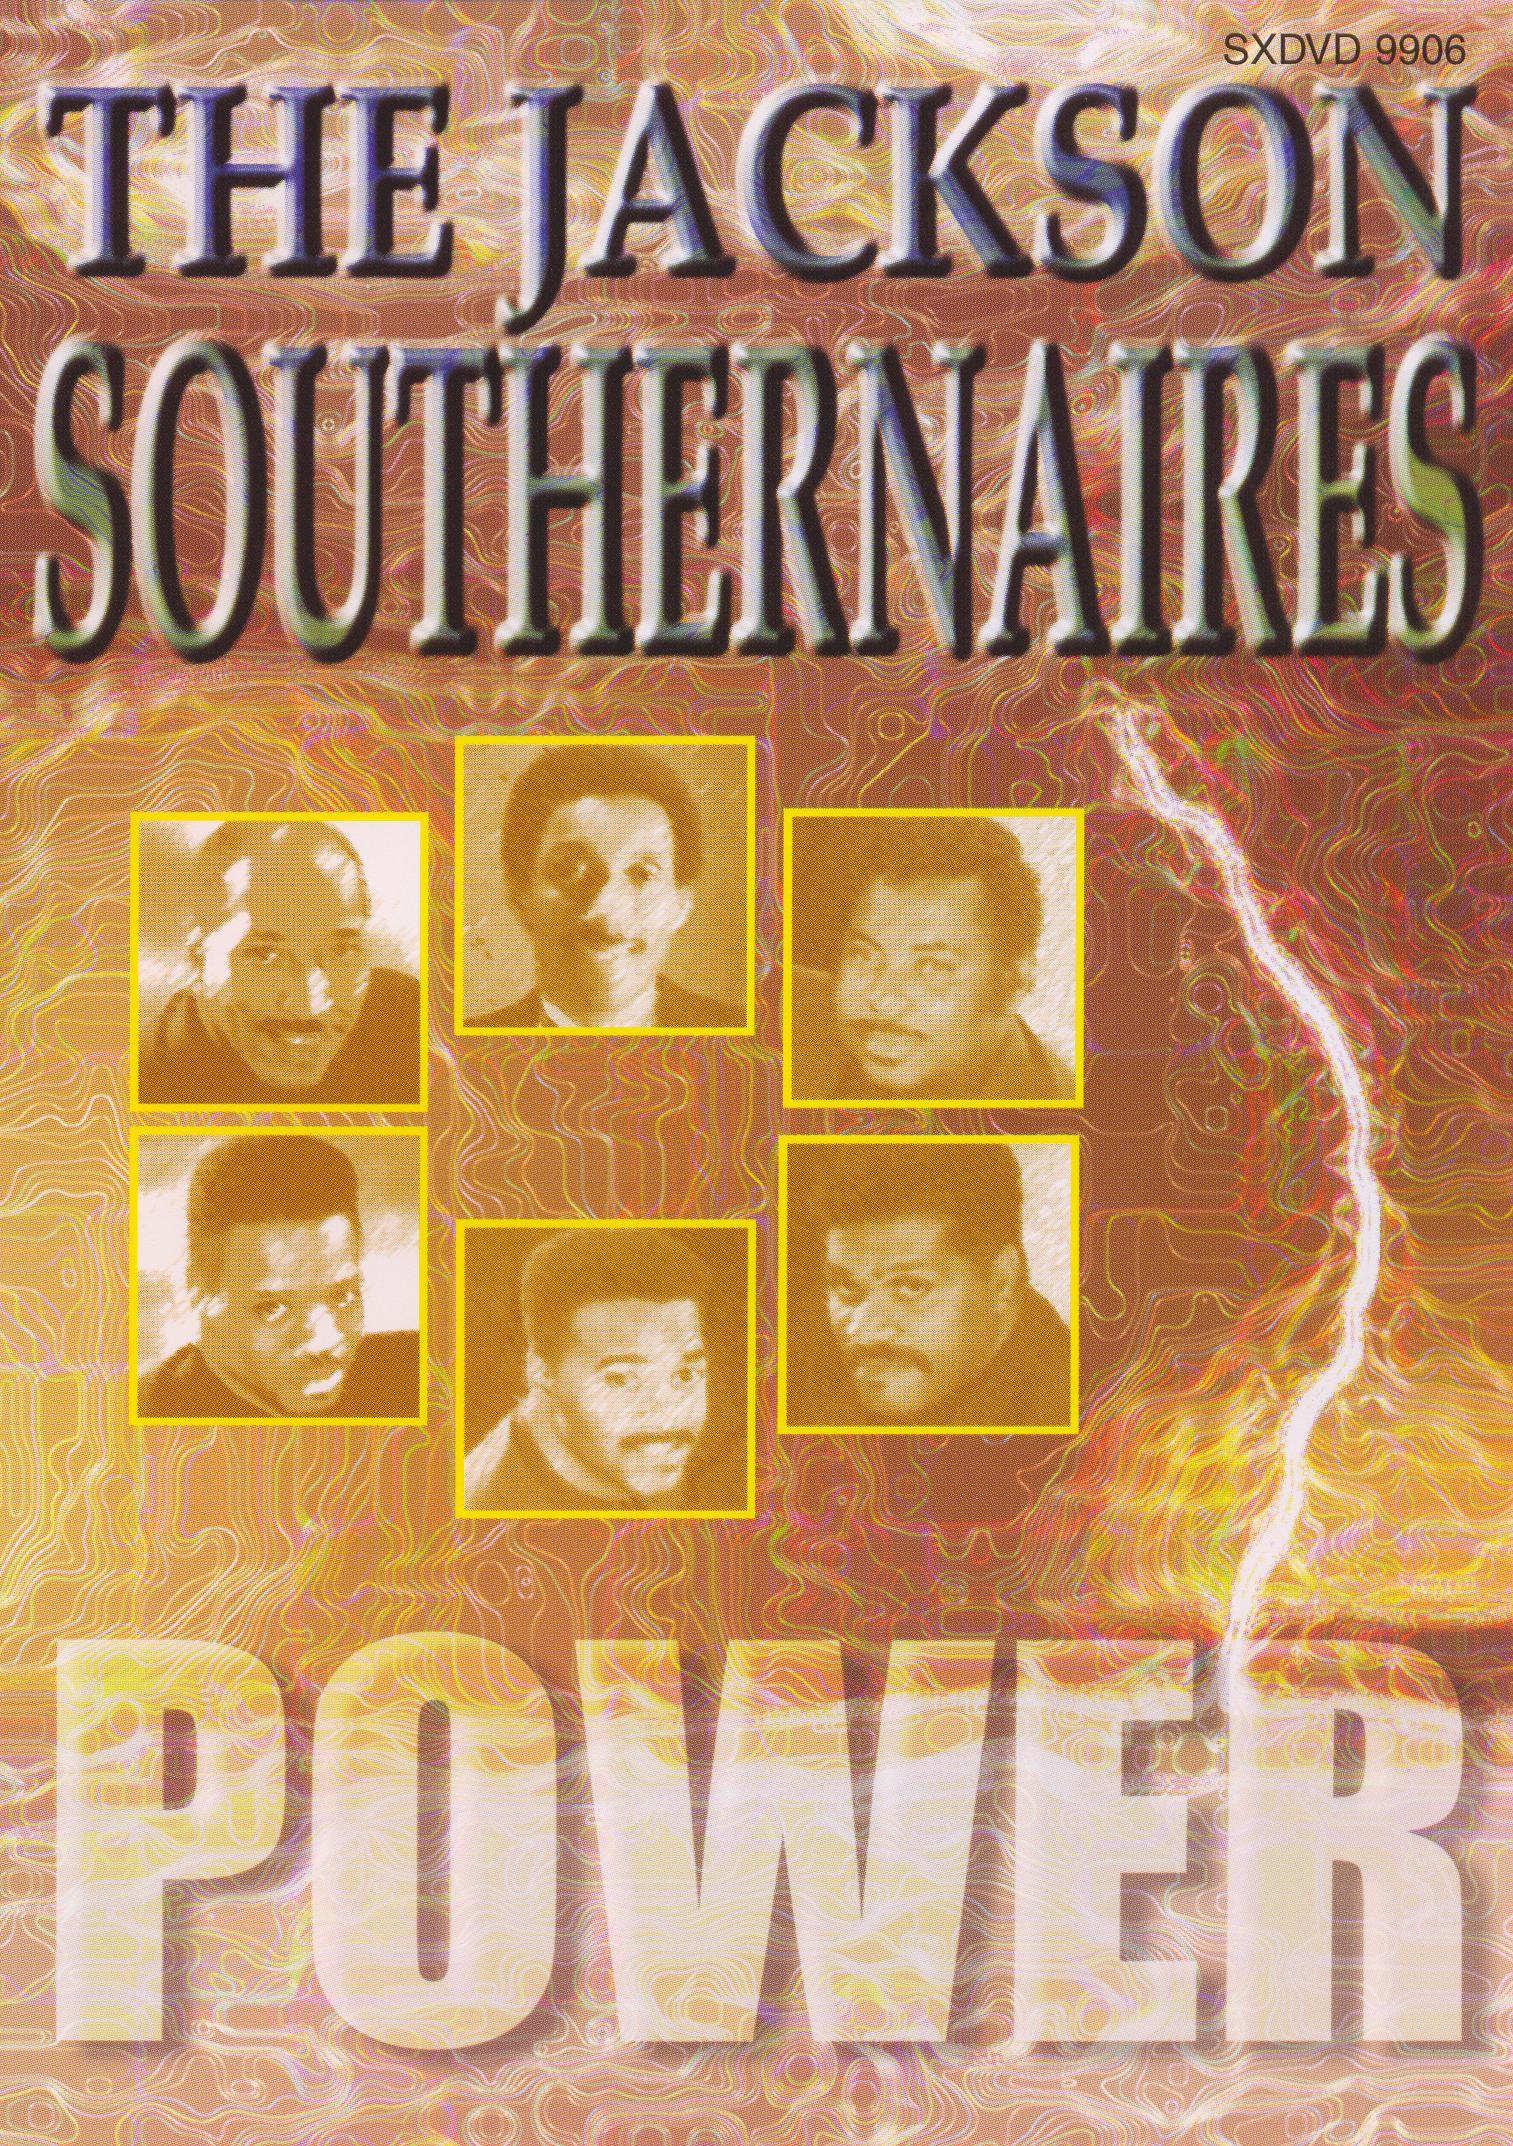 The Jackson Southernaires: Power